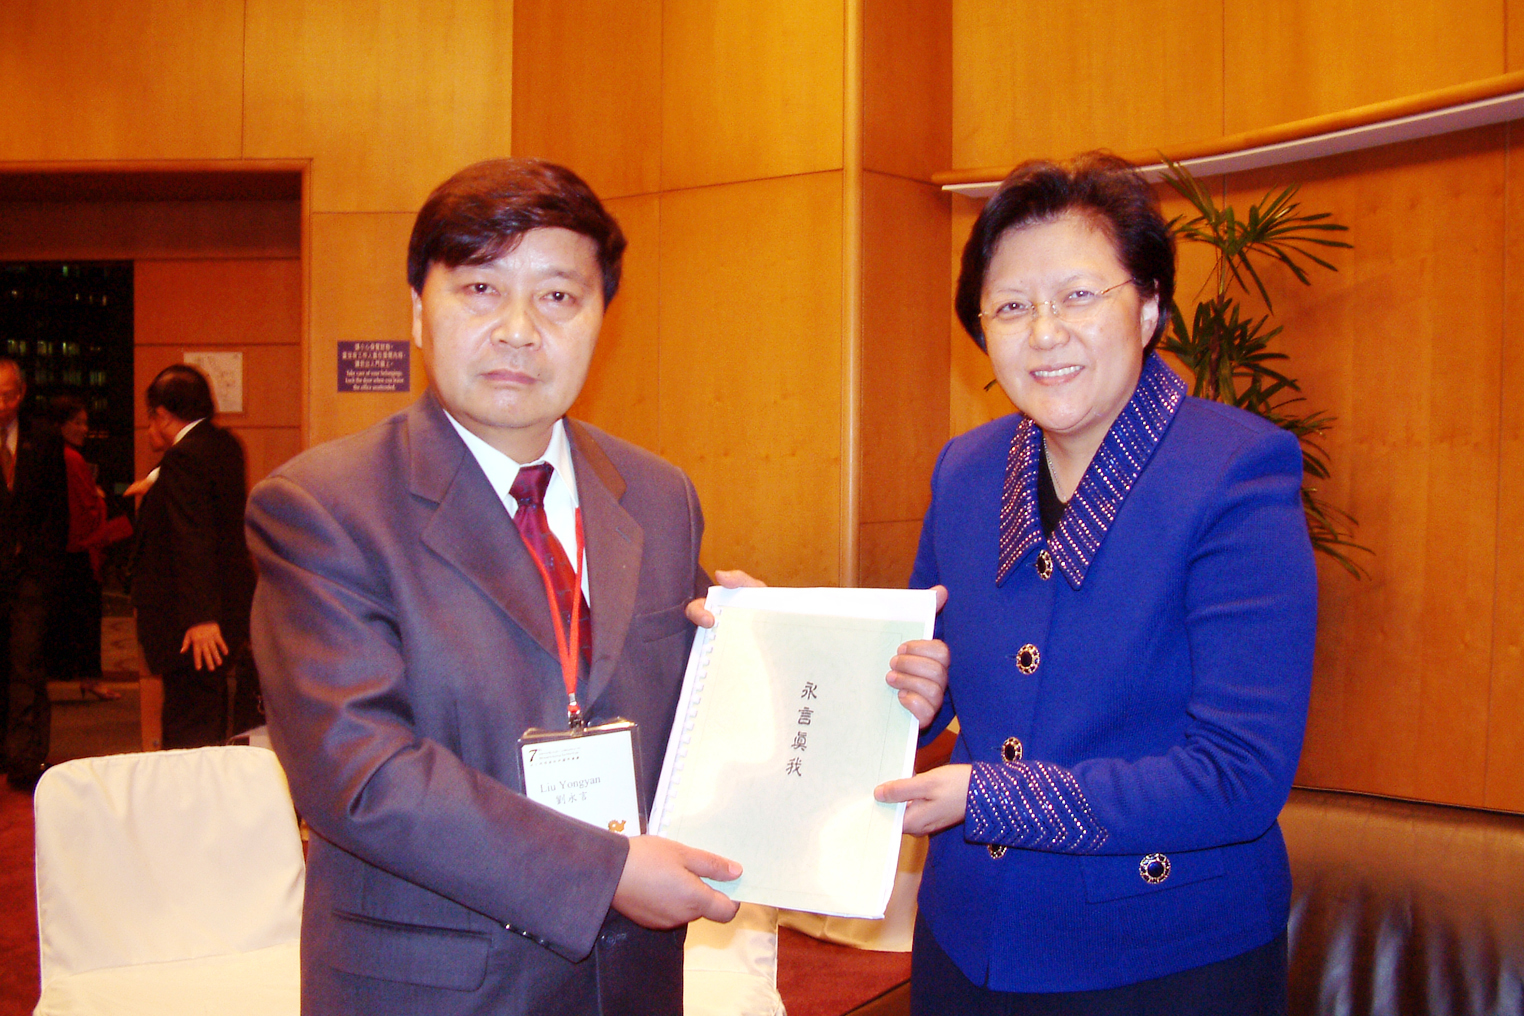 Accepting a gift of poetry from Rita Fan, the Chairman of the Hong Kong Legislative Council